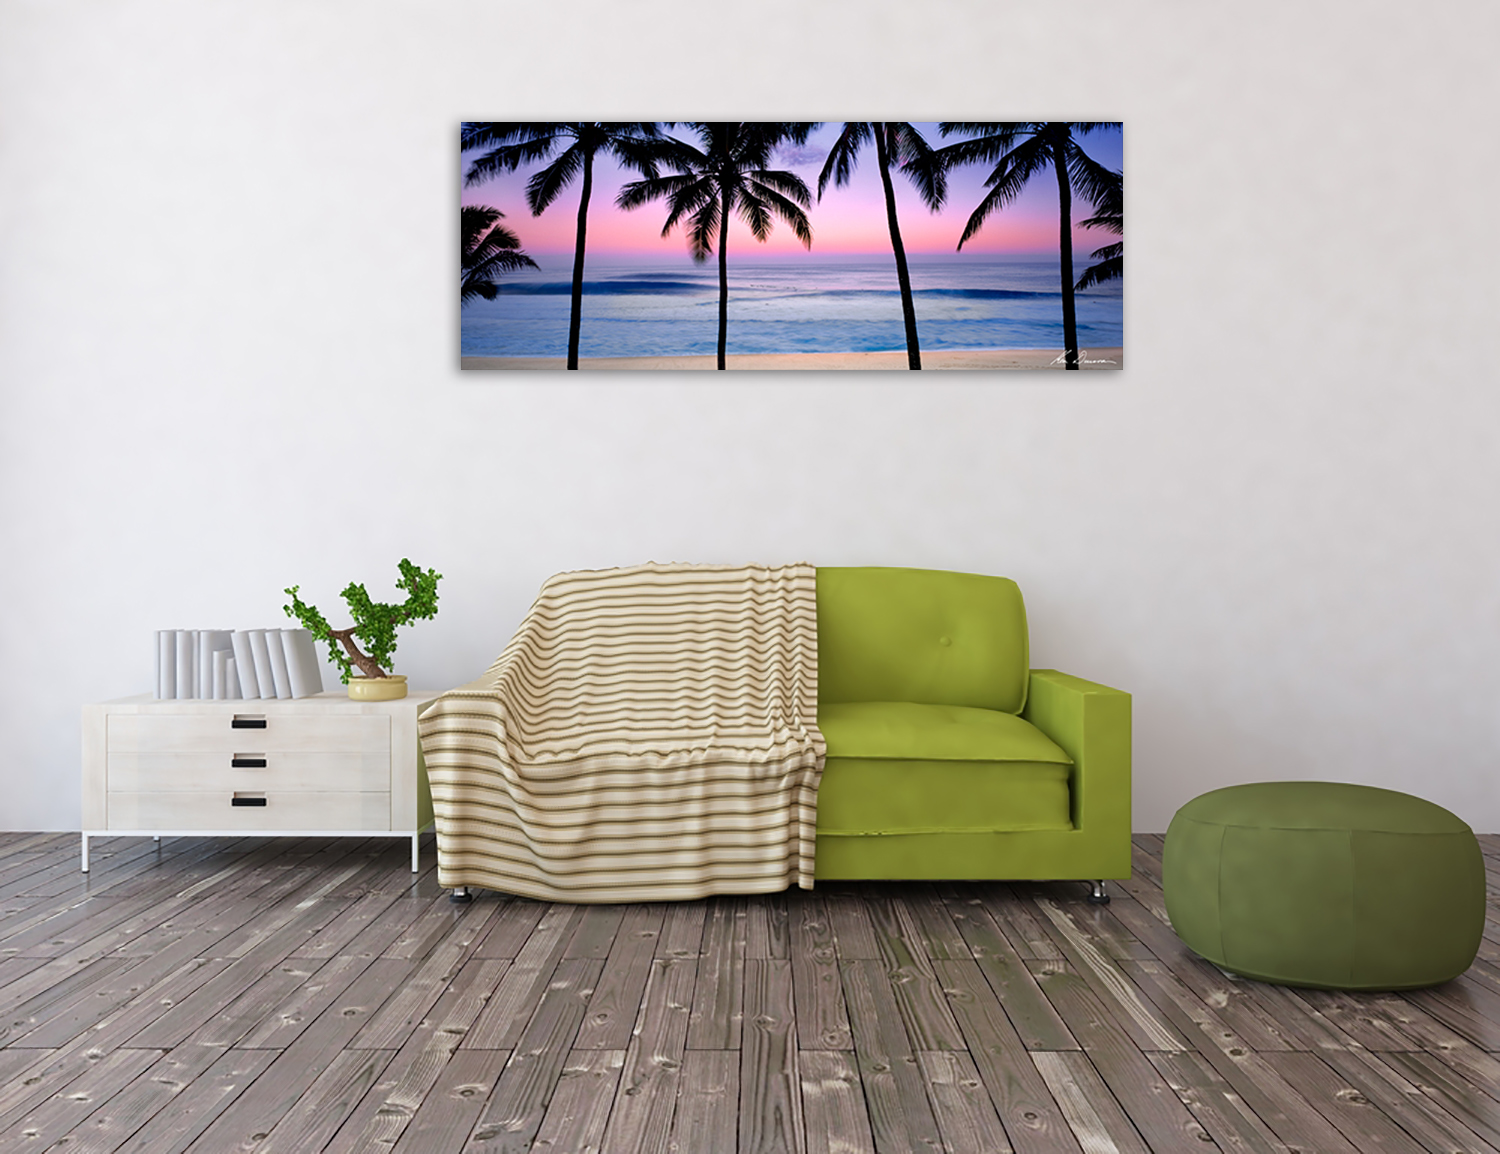 Living Room Wall Art on Canvas